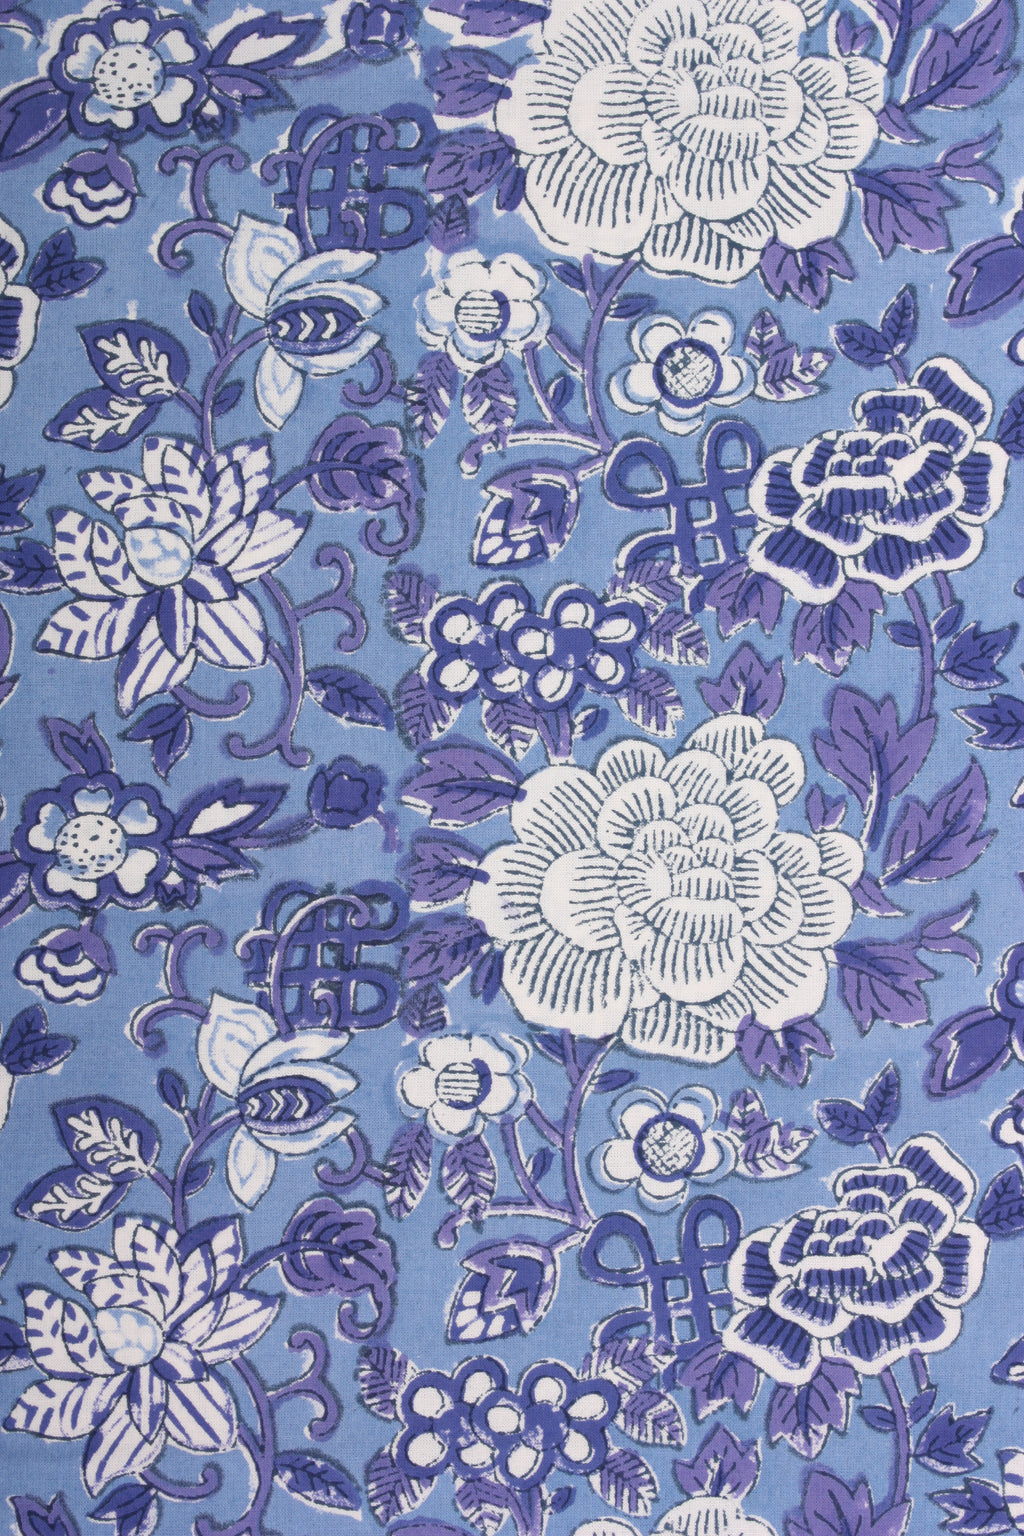 Queen Flat Sheet - Oriental Floral Blue